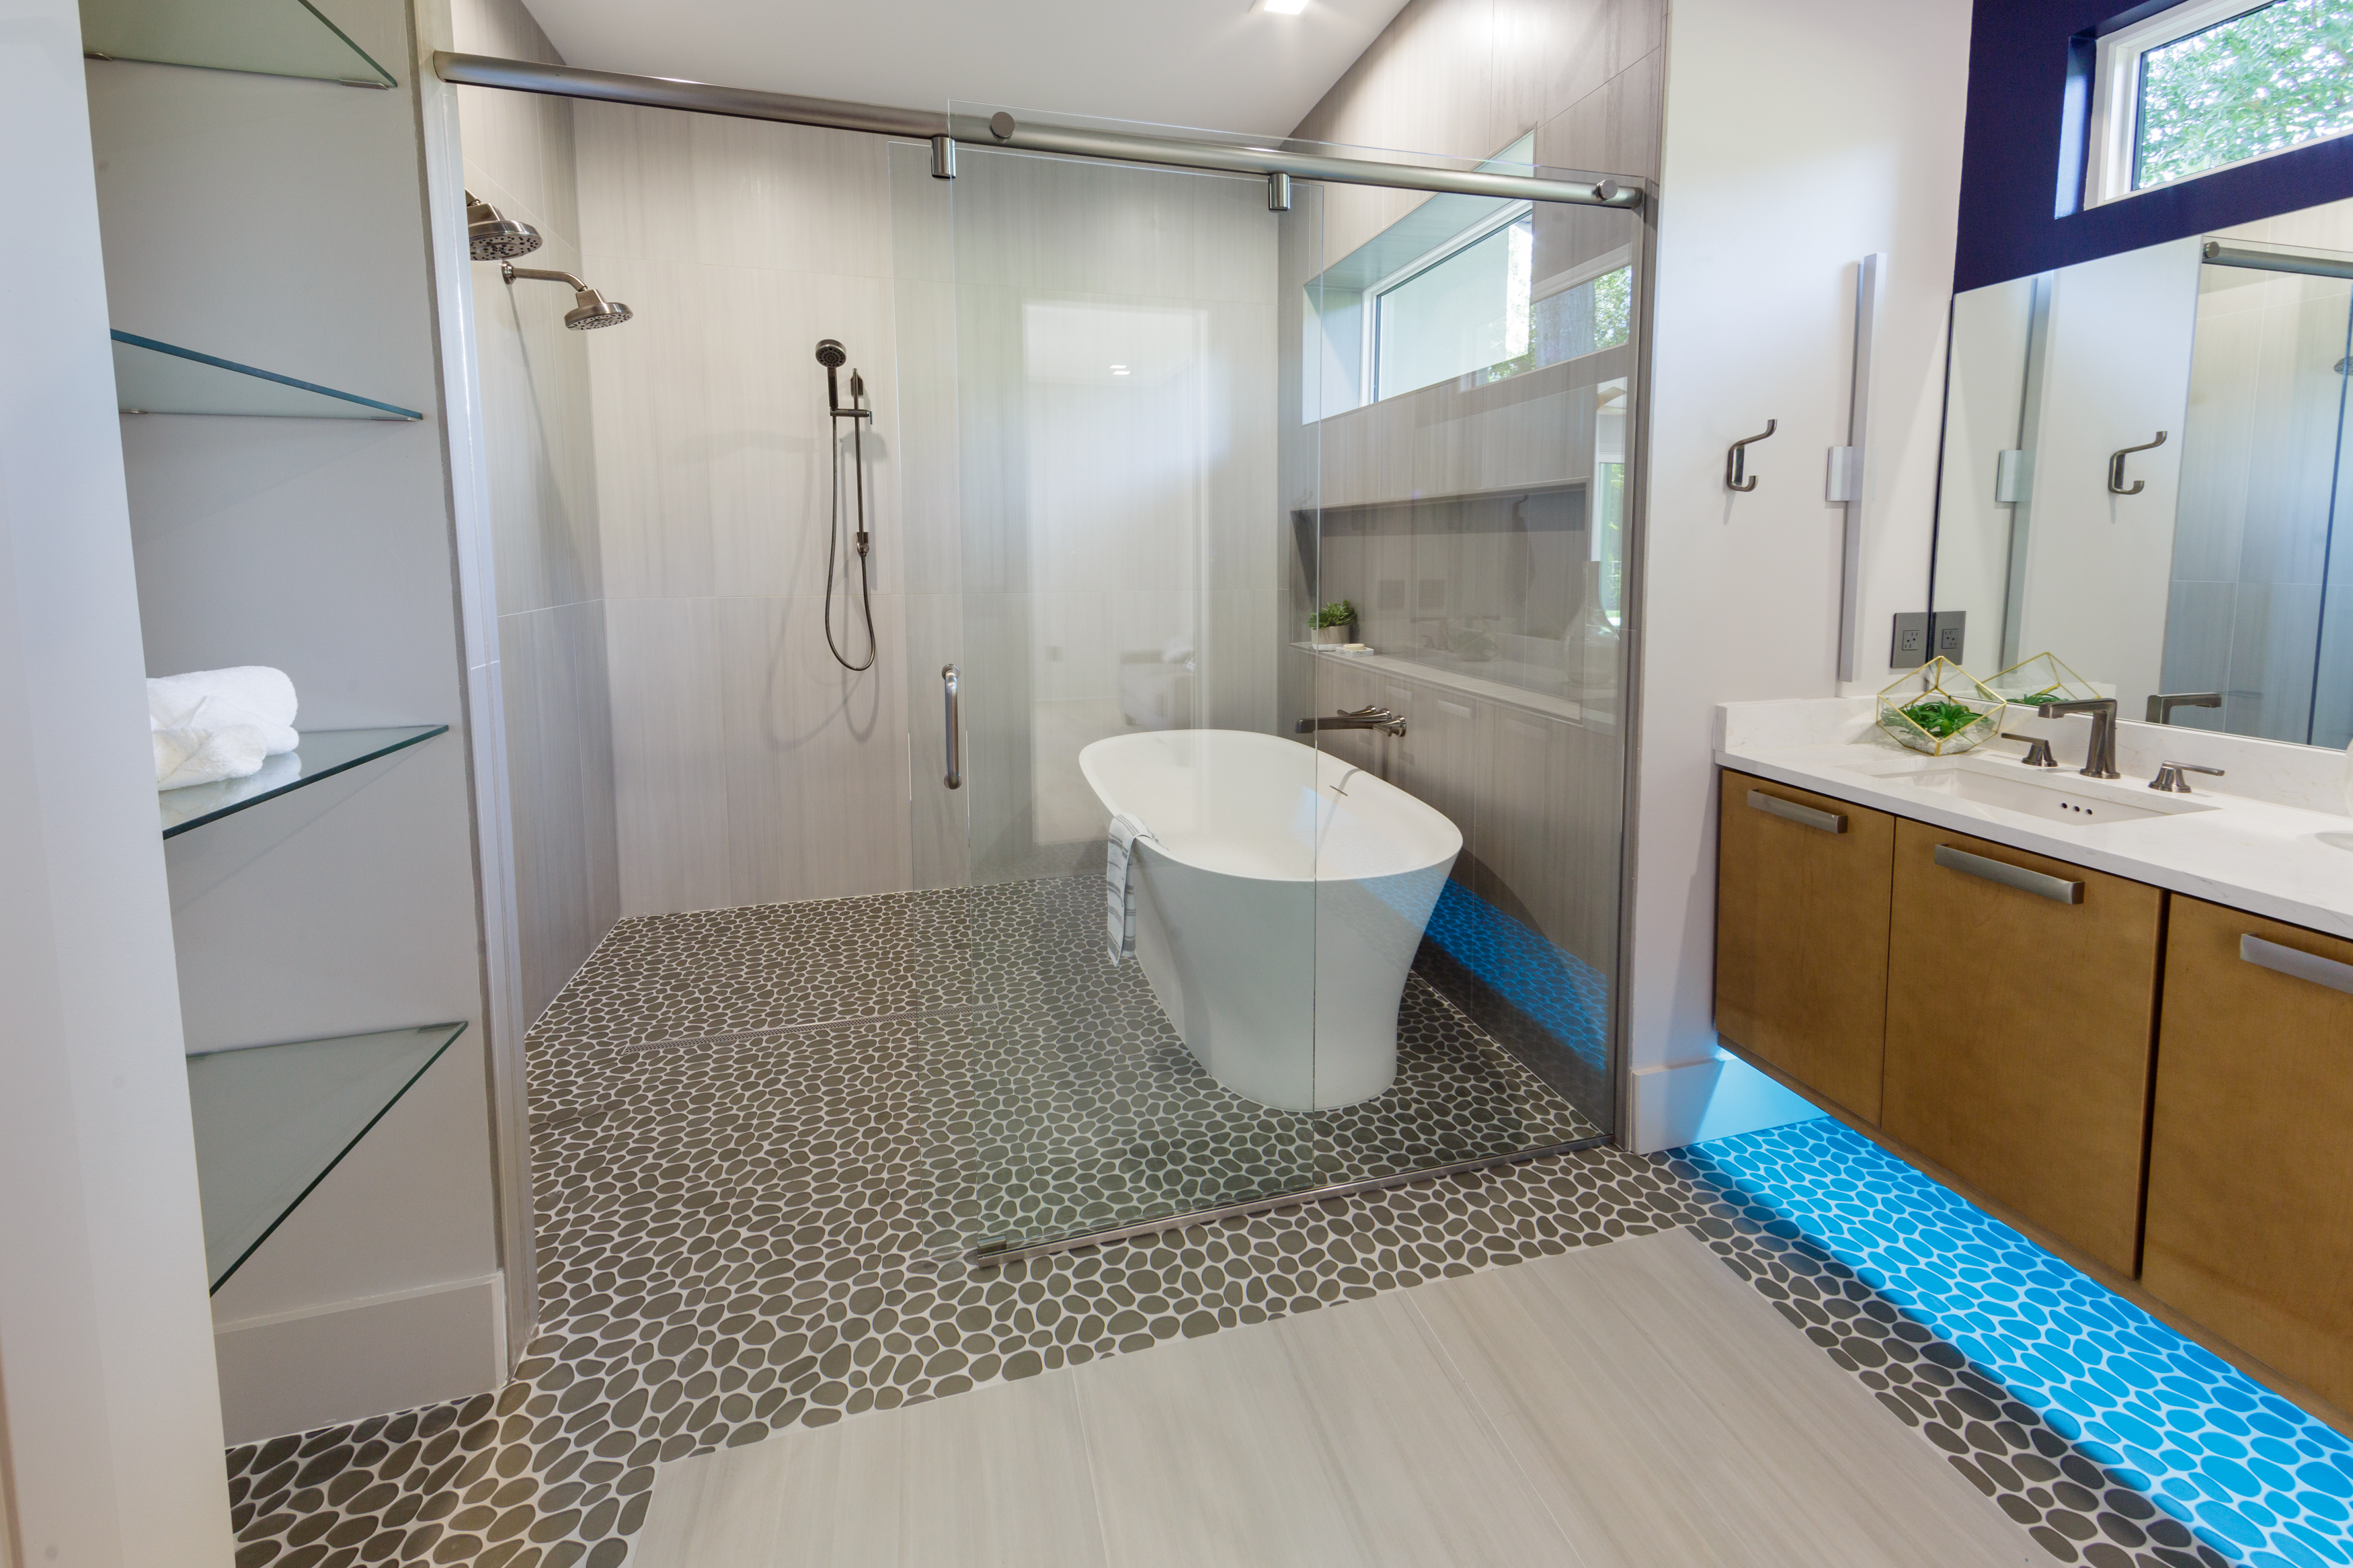 Grinnell Modern: Master Bath Tub and Shower